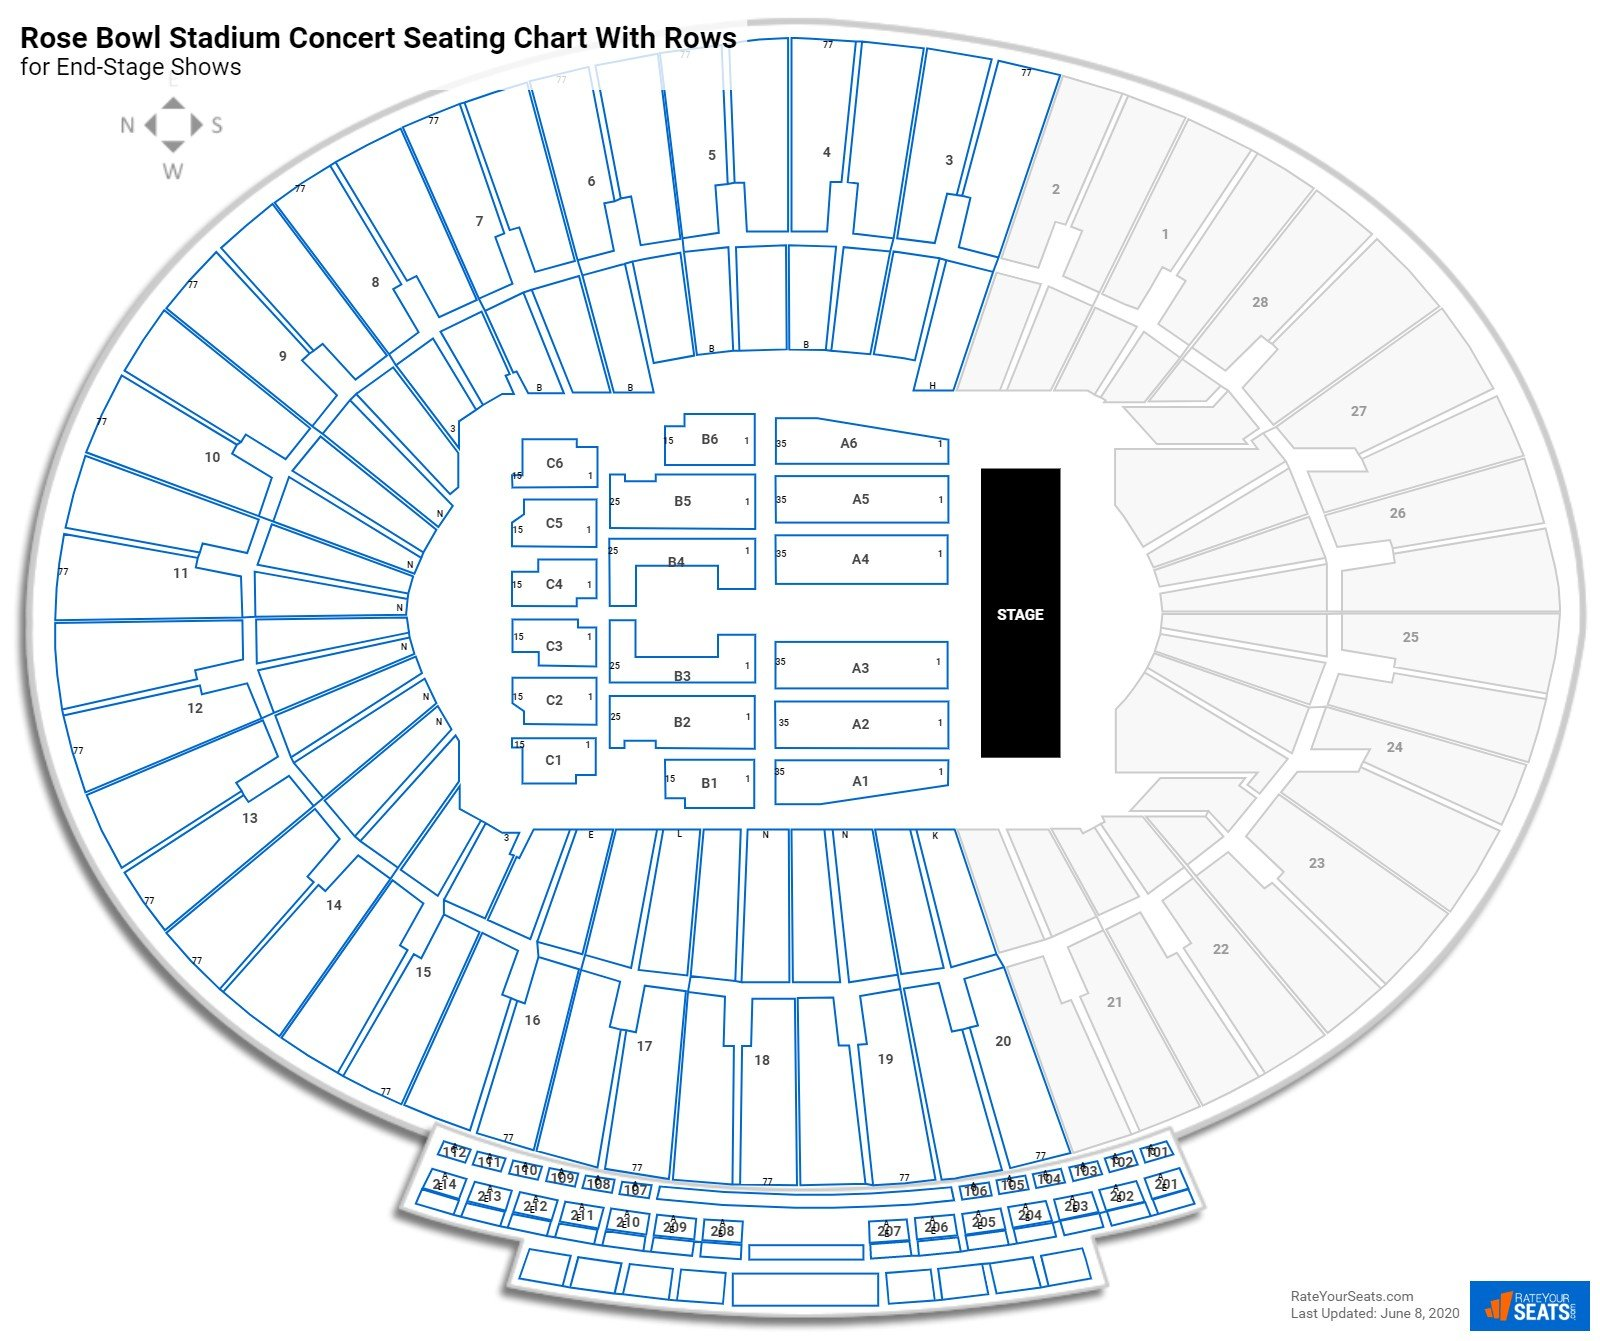 Rose Bowl Stadium seating chart with rows concert